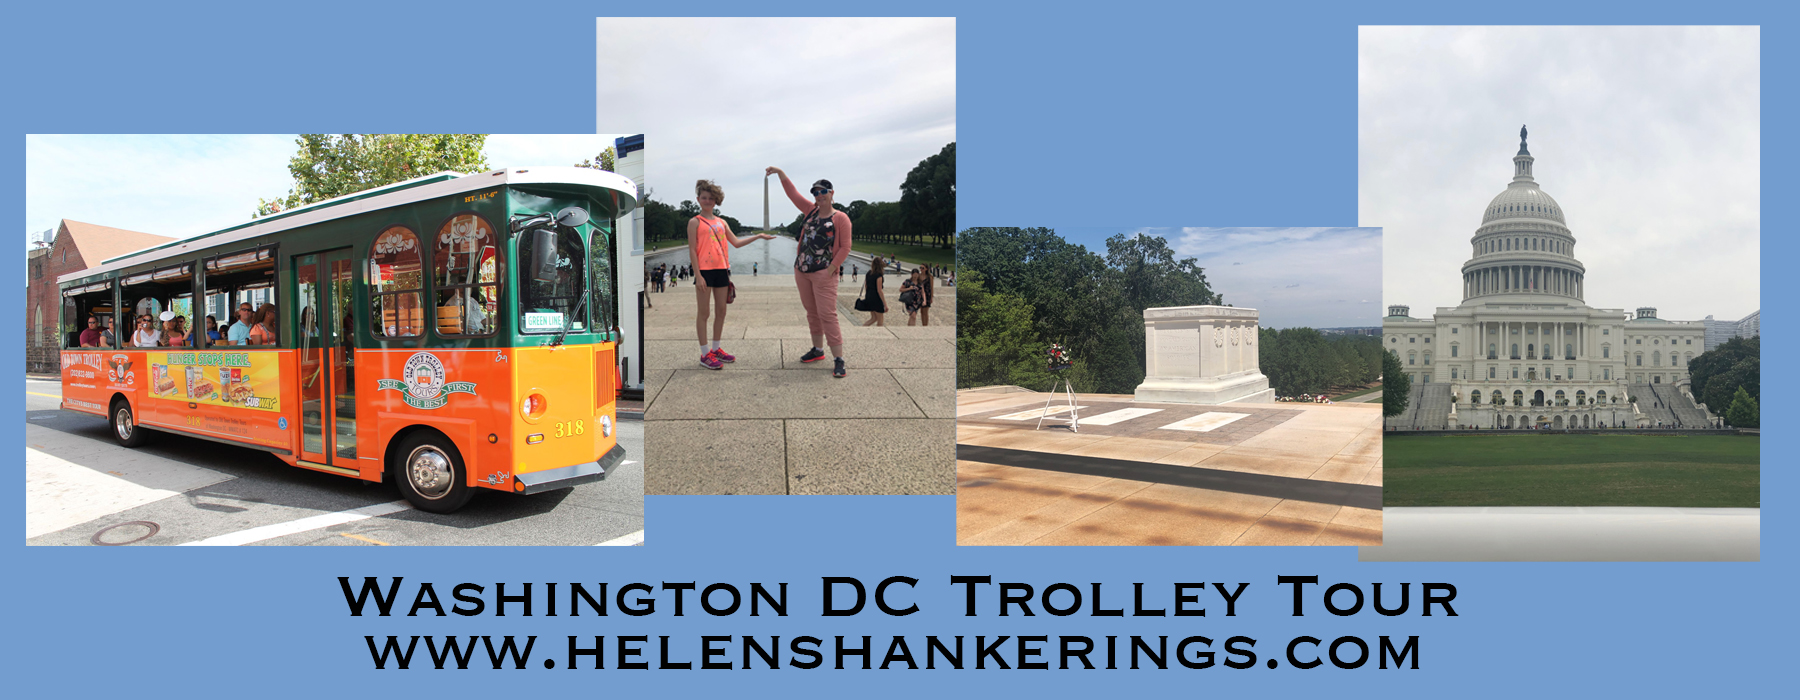 Washington DC Trolley Tour